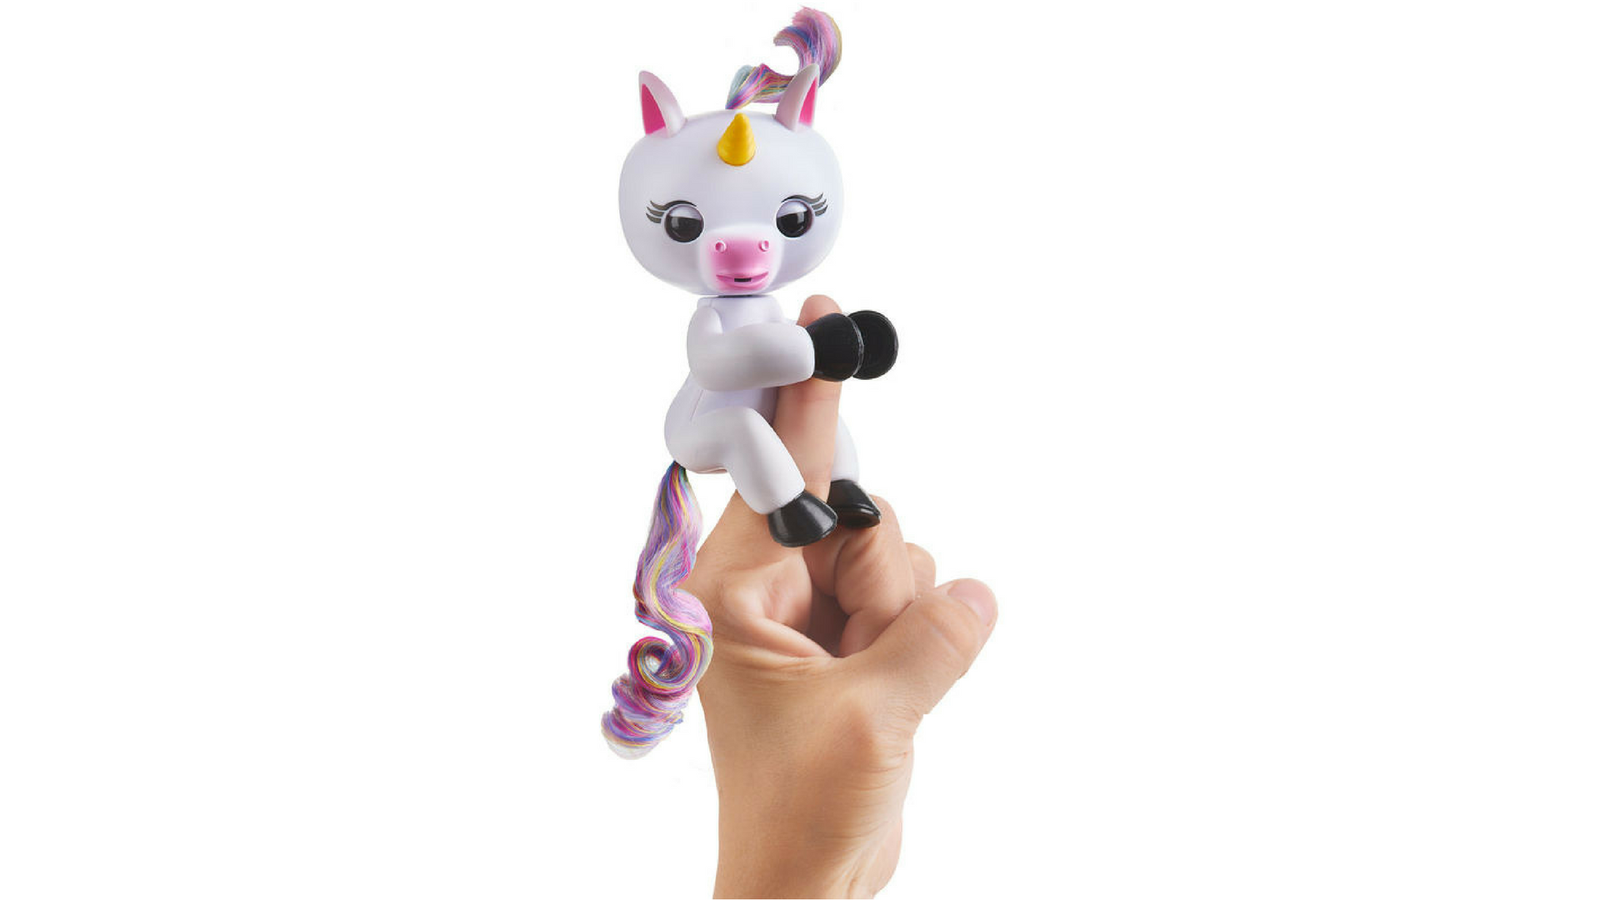 How to Buy Fingerlings, the Hardest-to-Find Toy of the Year